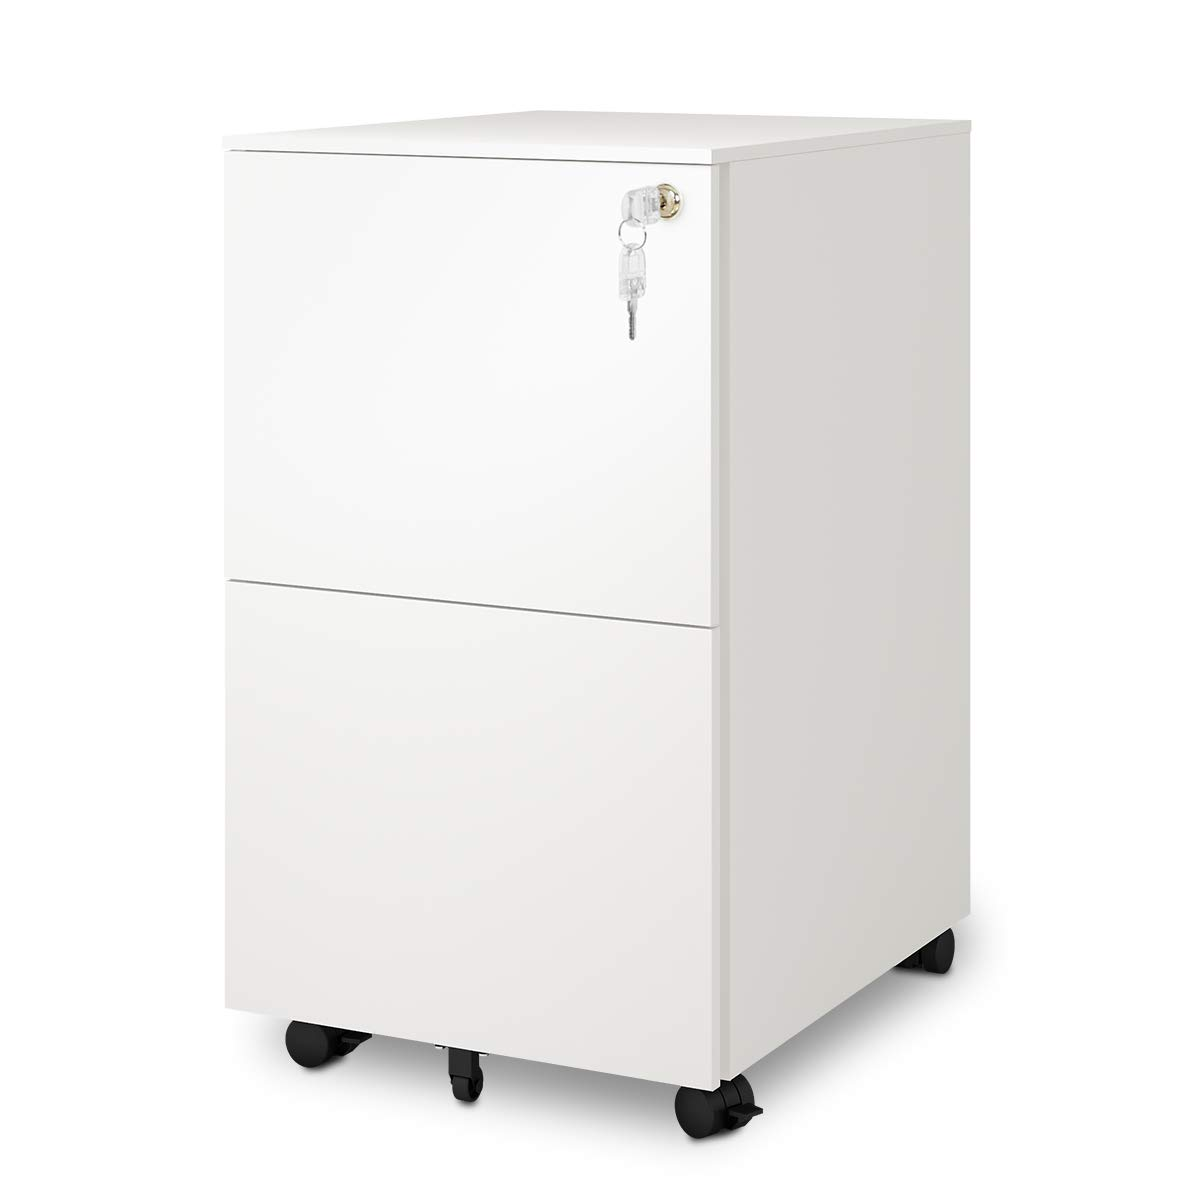 DEVAISE 2-Drawer Mobile File Cabinet with Lock, Commercial Vertical Cabinet in Black